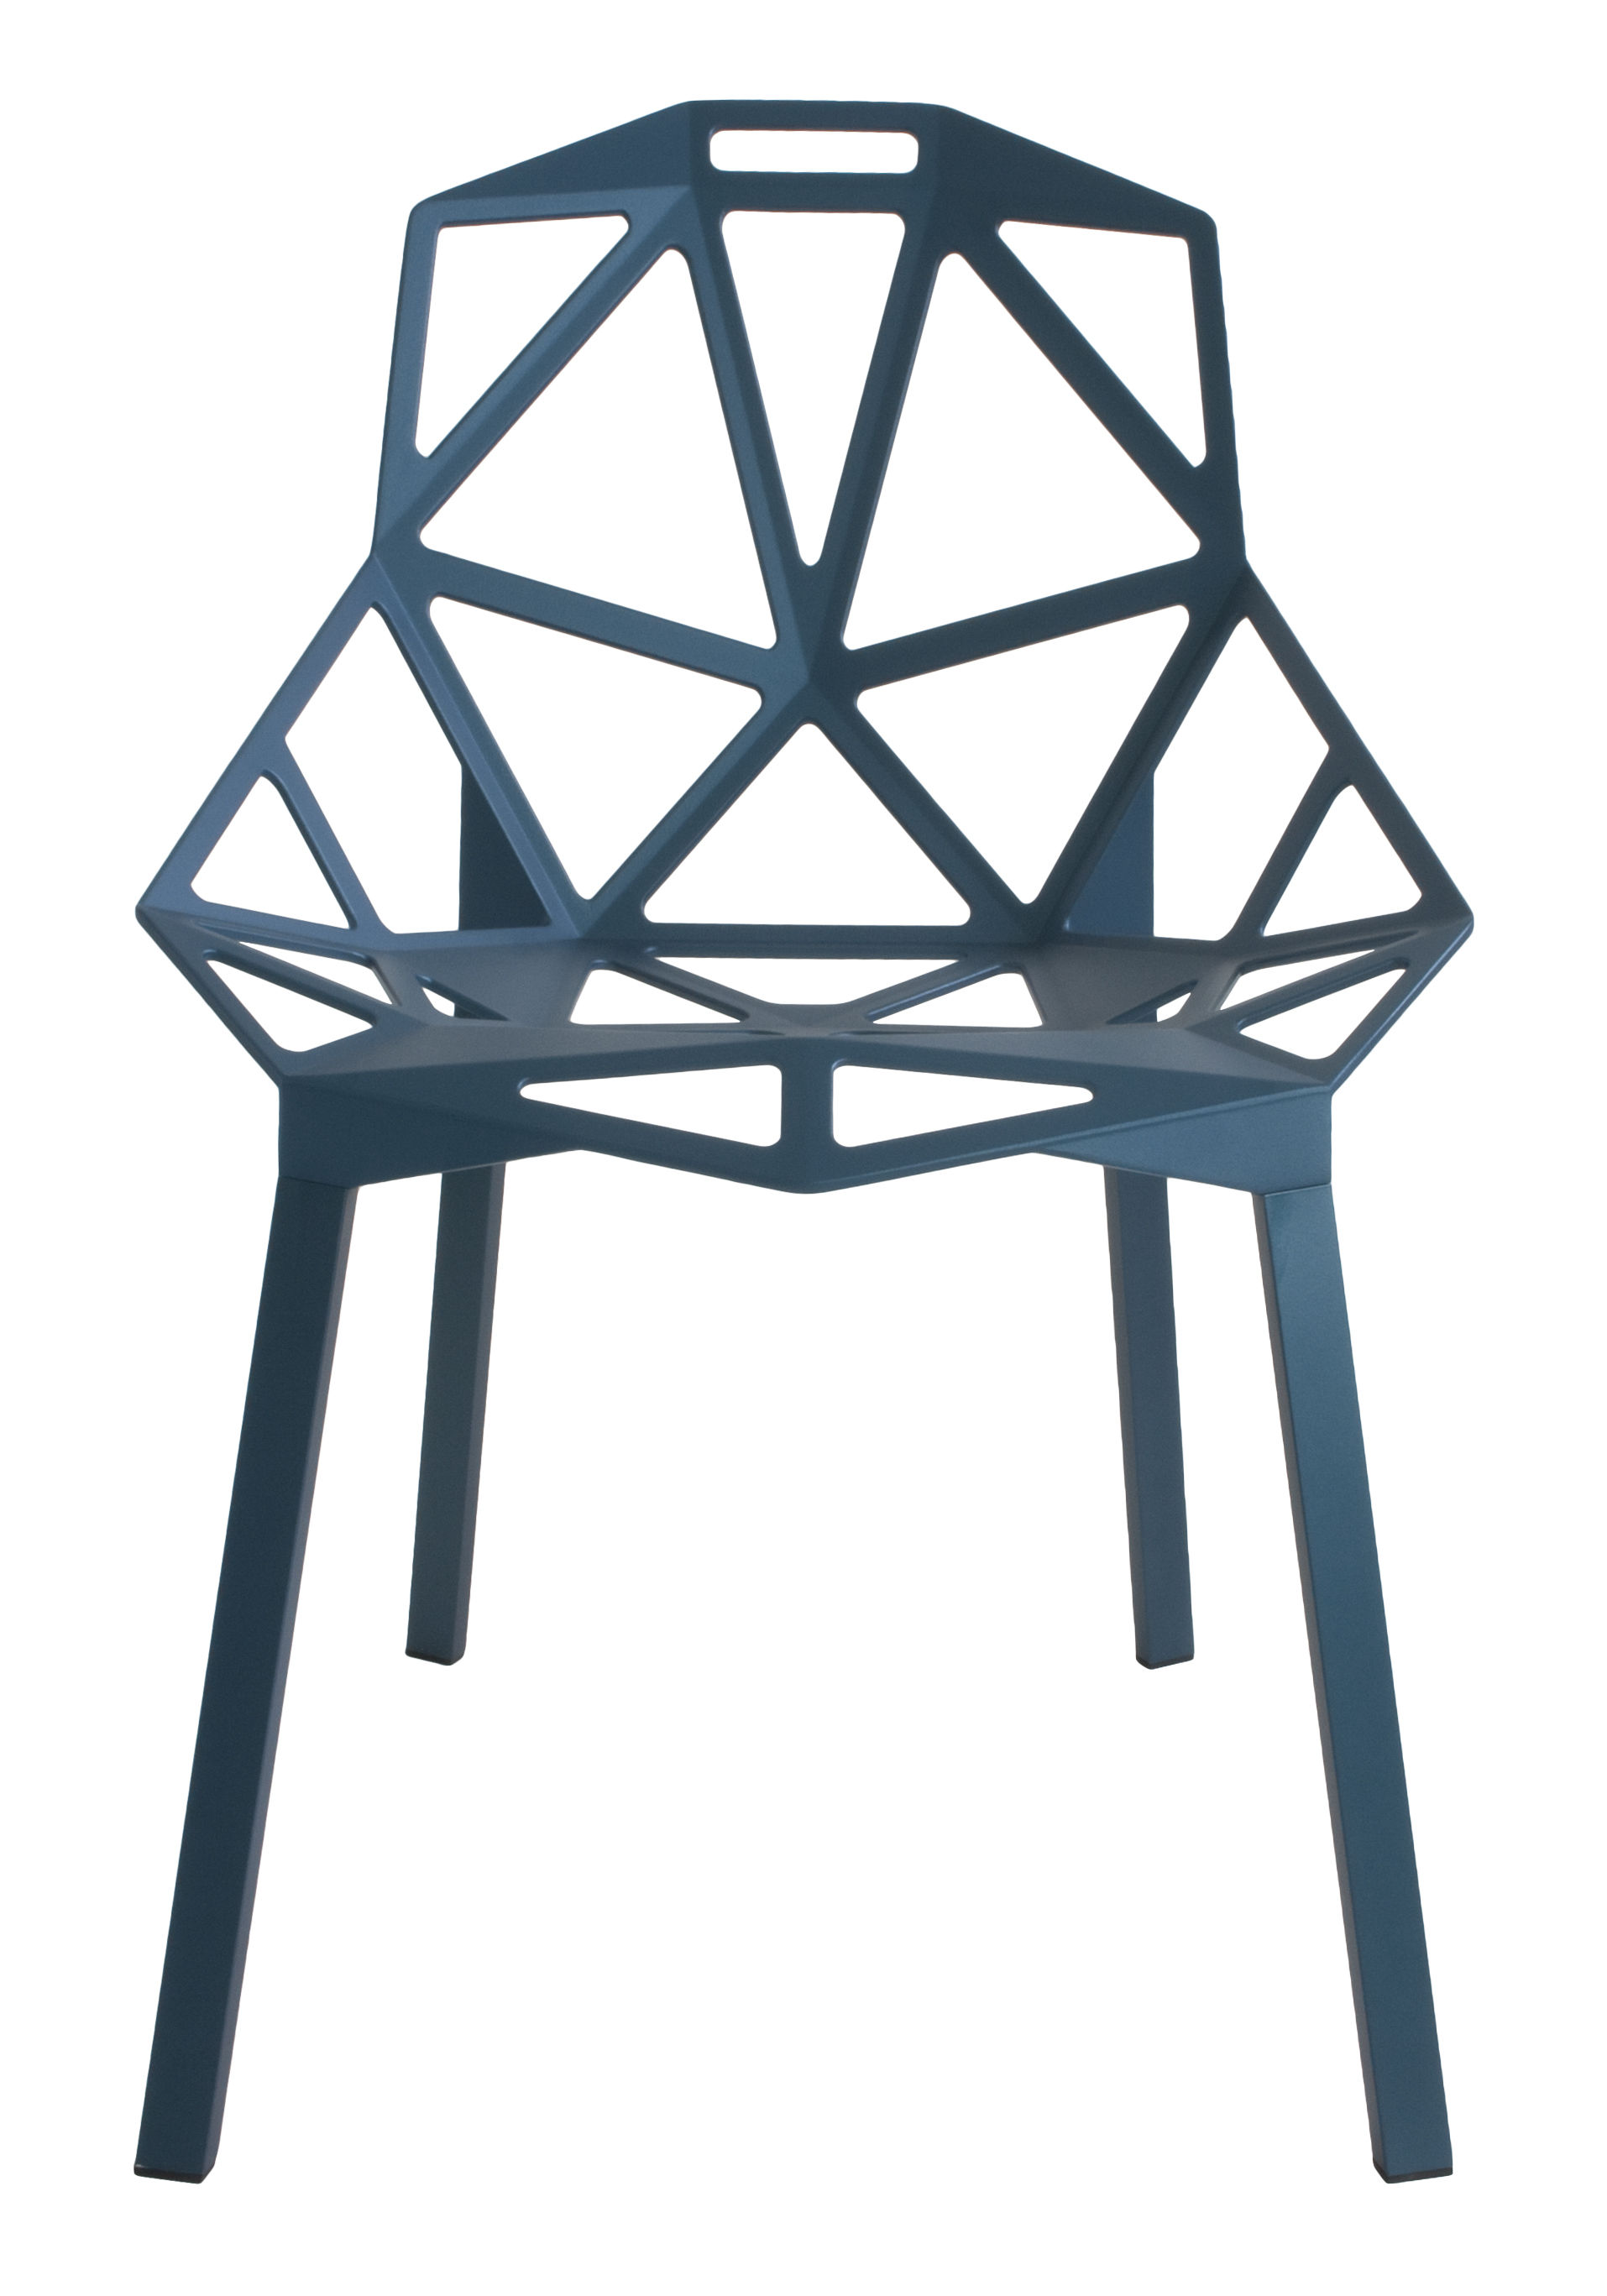 Furniture - Chairs - Chair One Stacking chair - / metal by Magis - Blue / Blue feet - Painted cast aluminium, Varnished aluminium